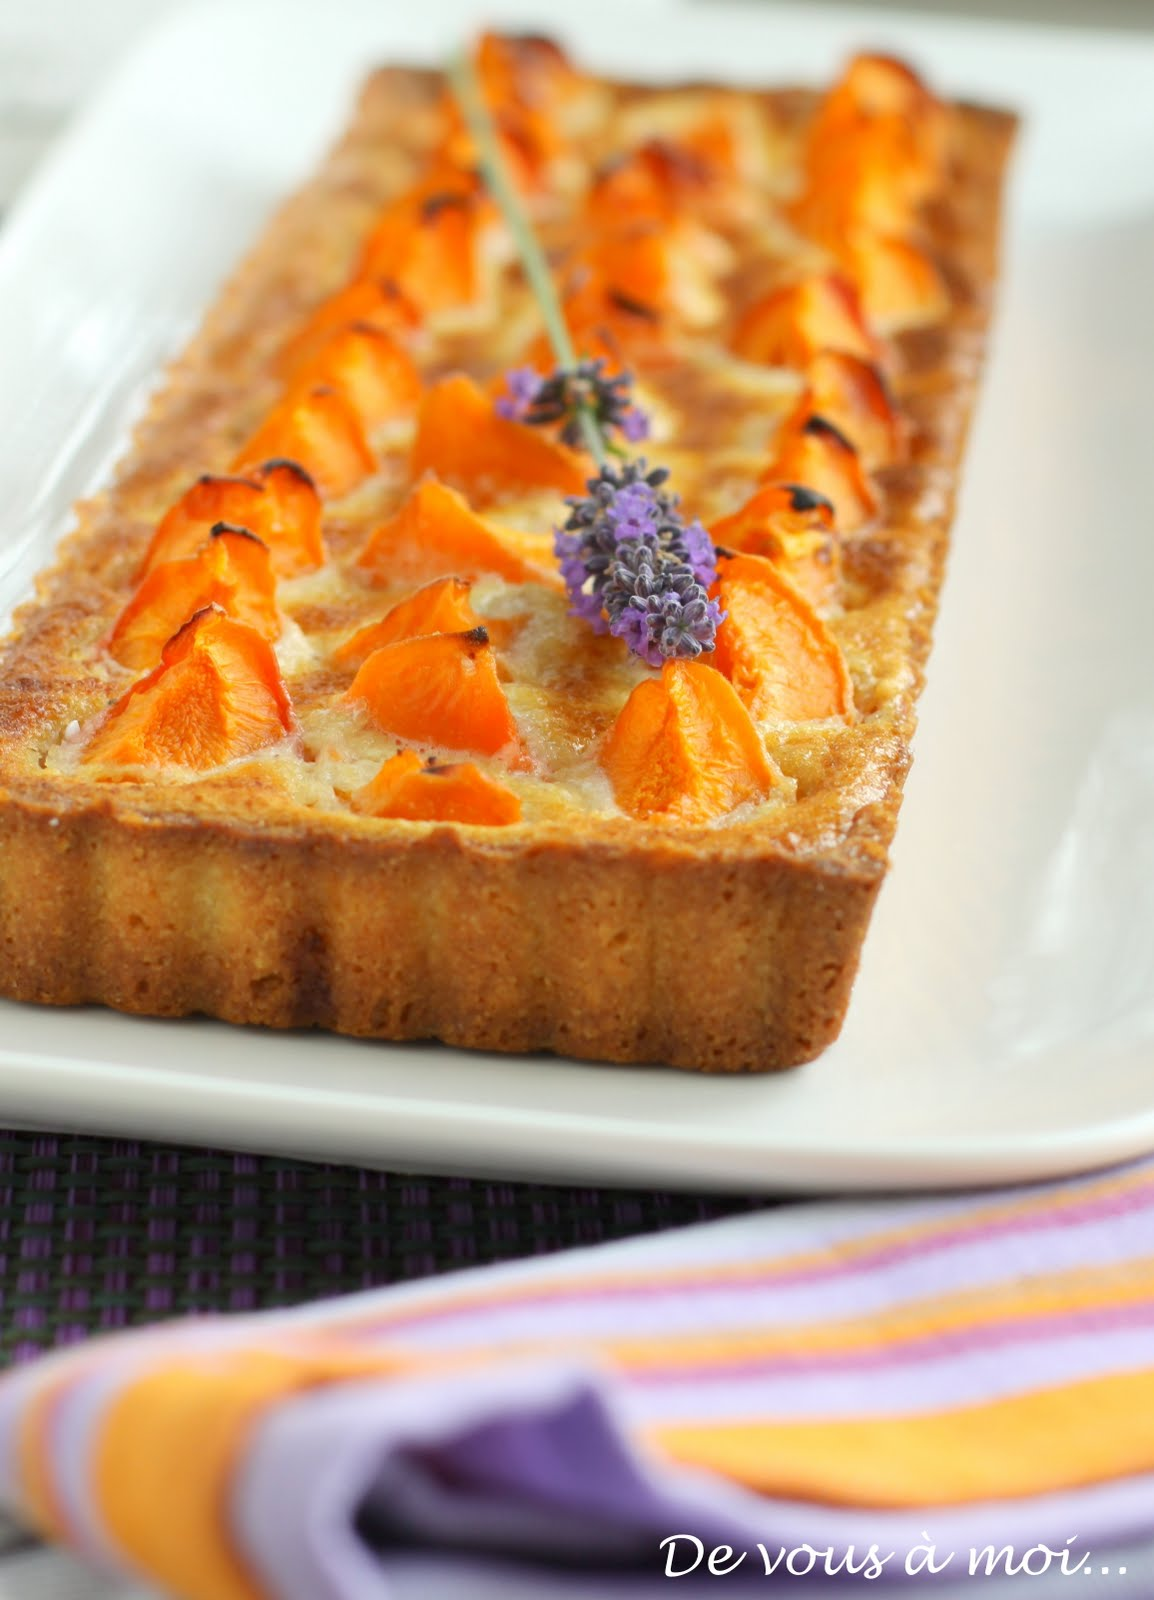 de vous moi tarte aux abricots cr me d 39 amandes au miel de lavande. Black Bedroom Furniture Sets. Home Design Ideas